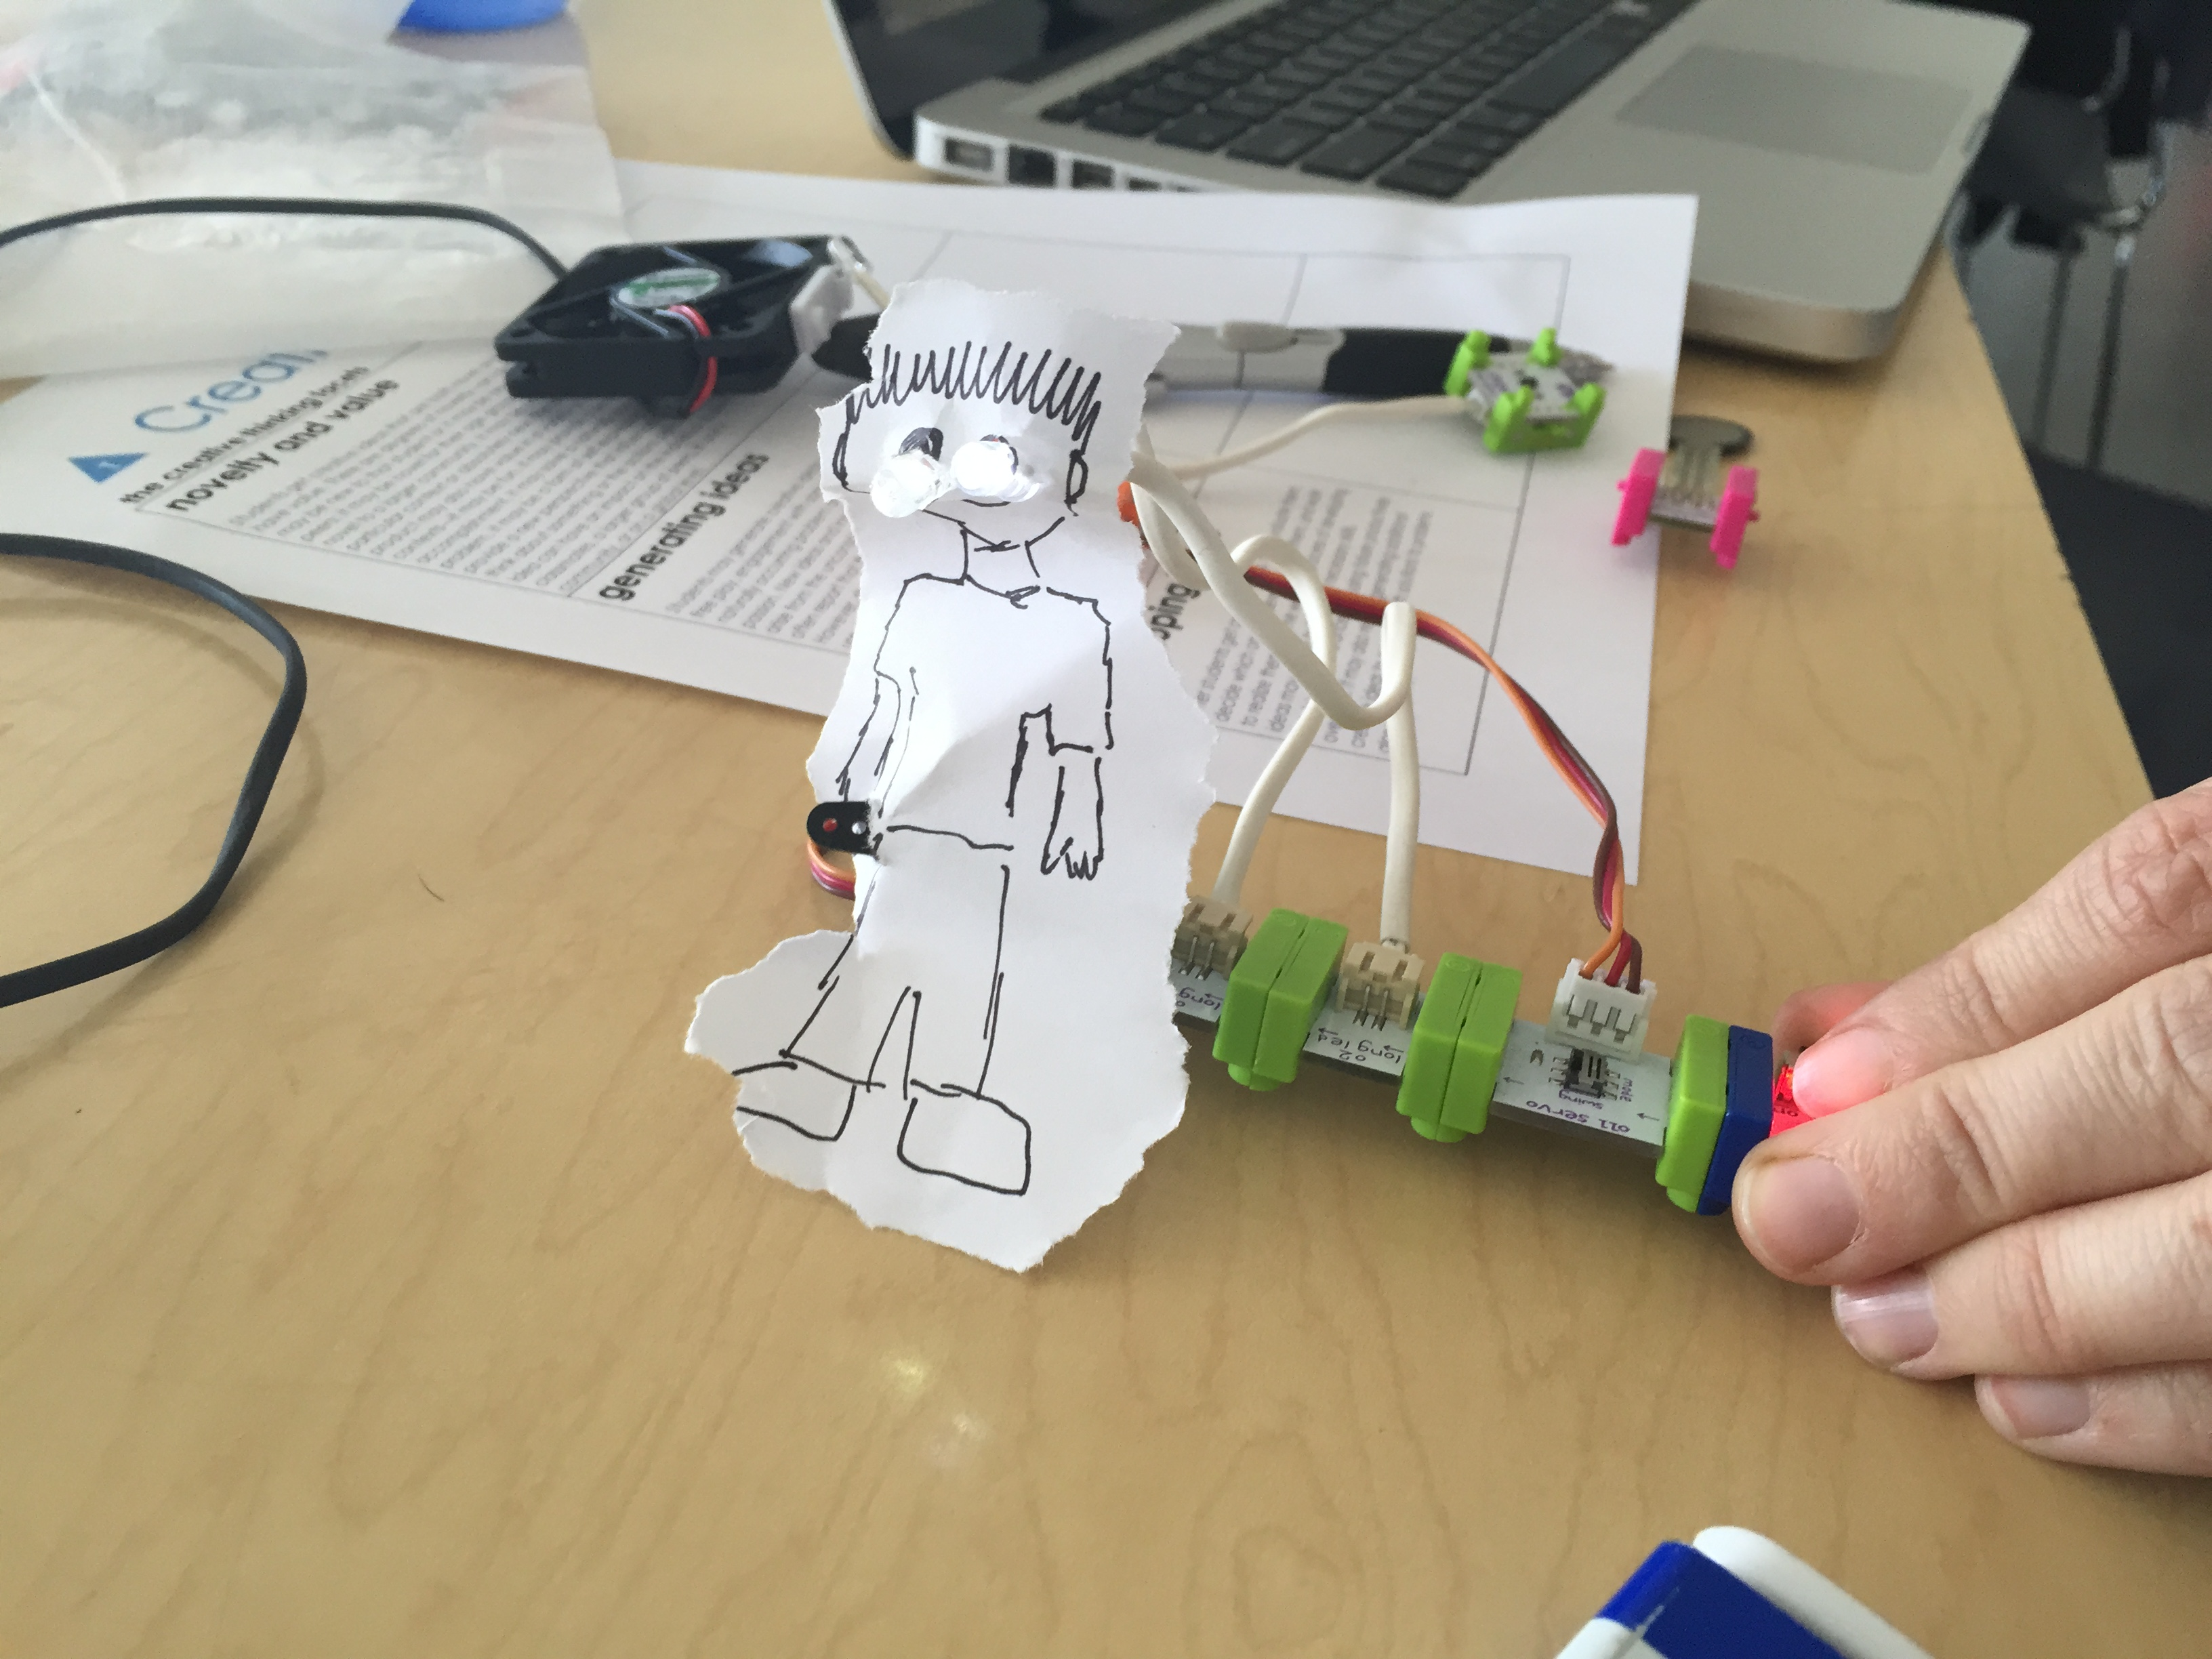 Littlebits Archive Mathematics And Science In Sd38 Richmond Circuit Diagram Worksheet Grade 9 Img 3849 3850 3851 3852